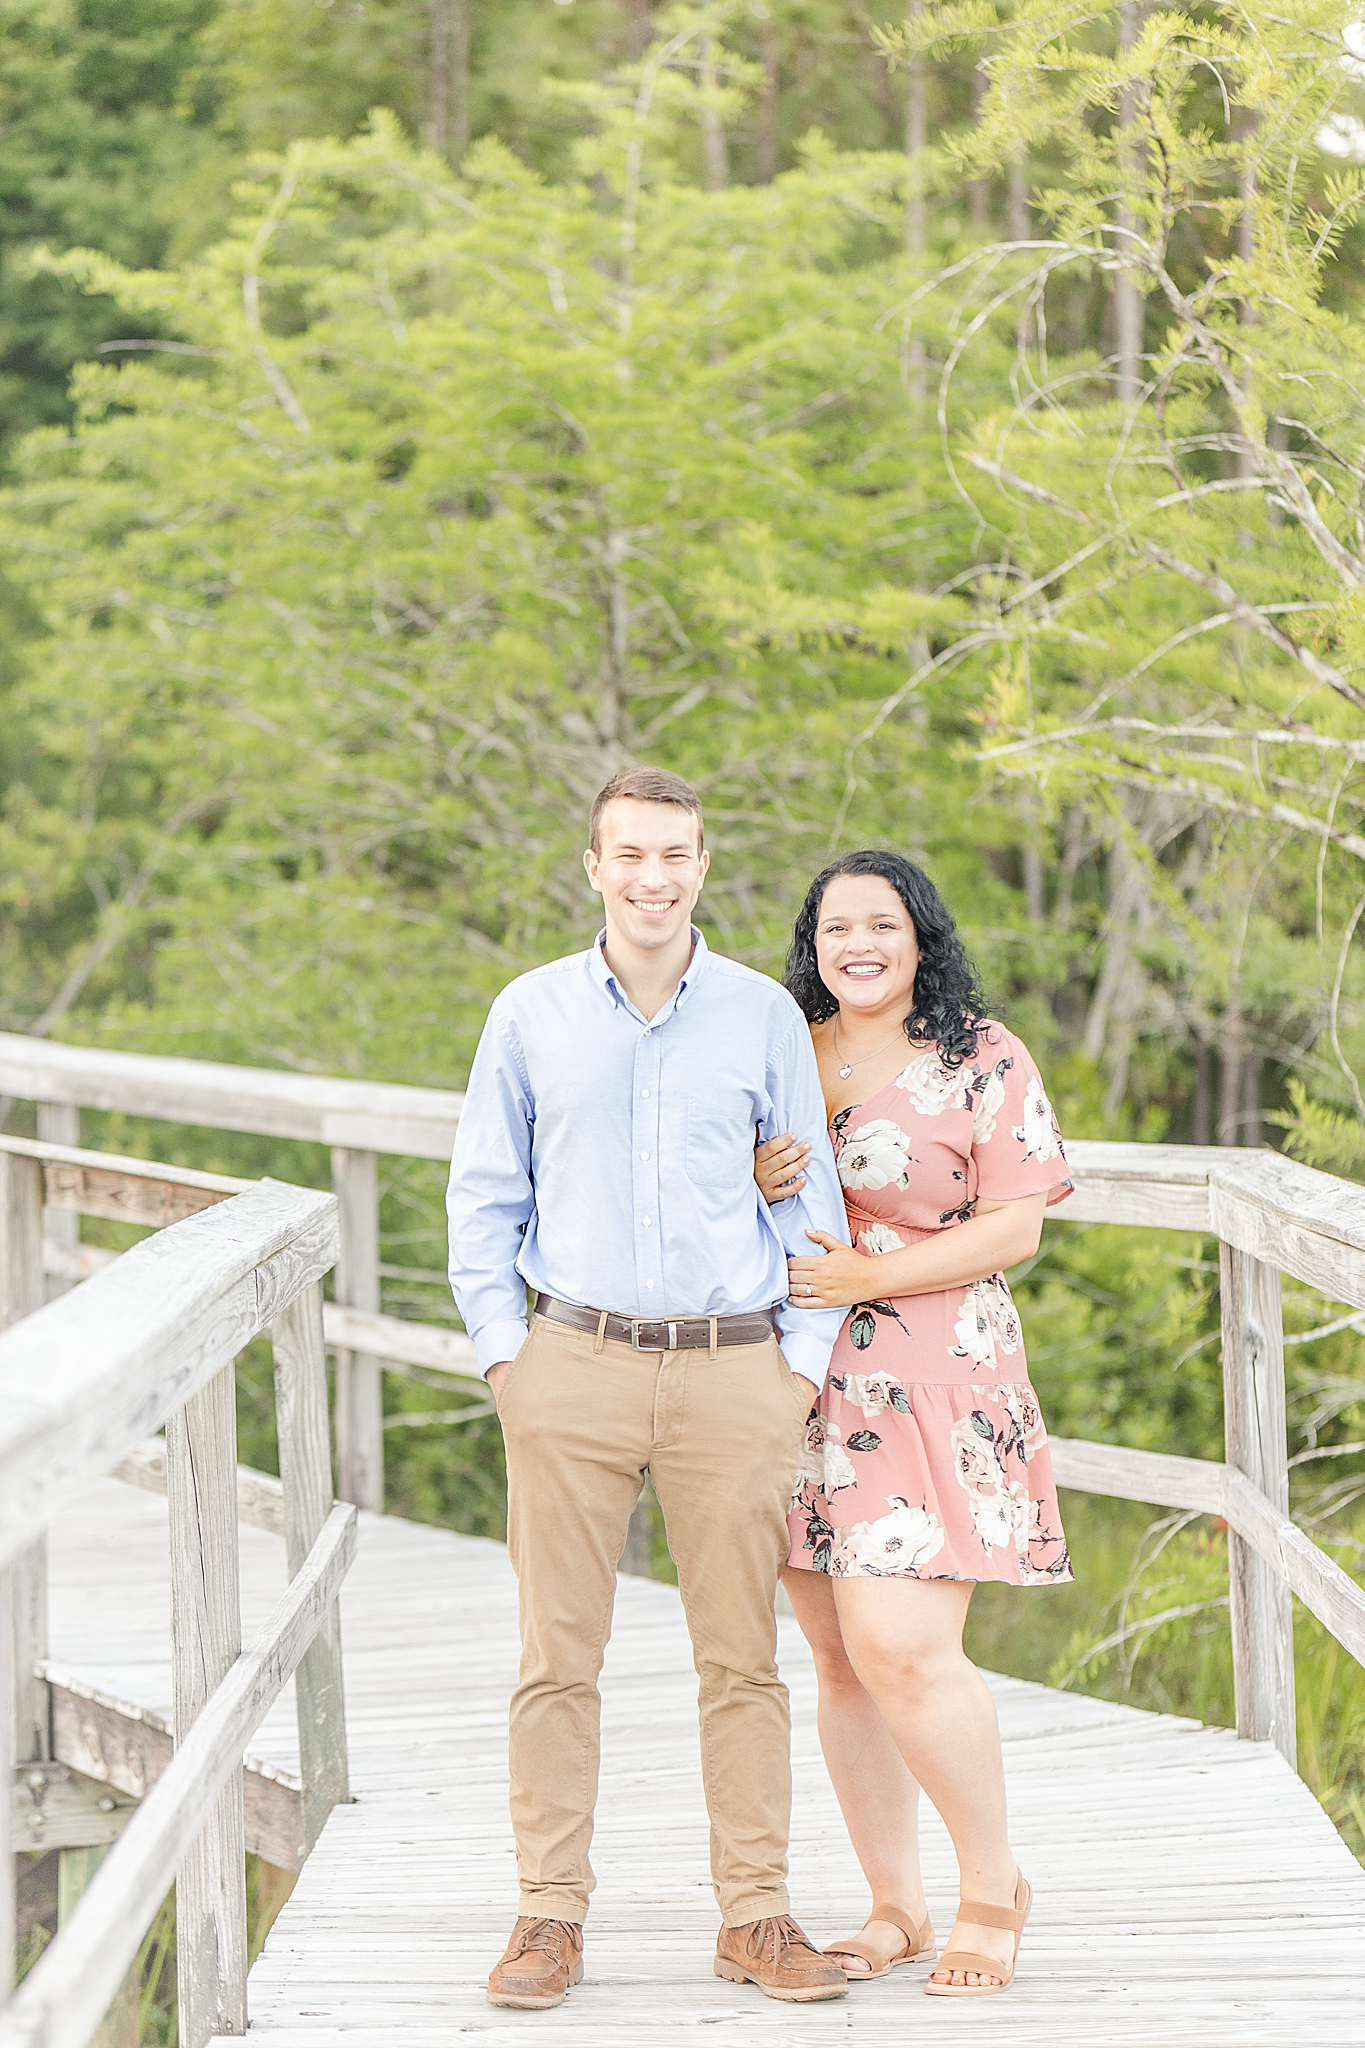 Bienville Square engagement session in Alabama